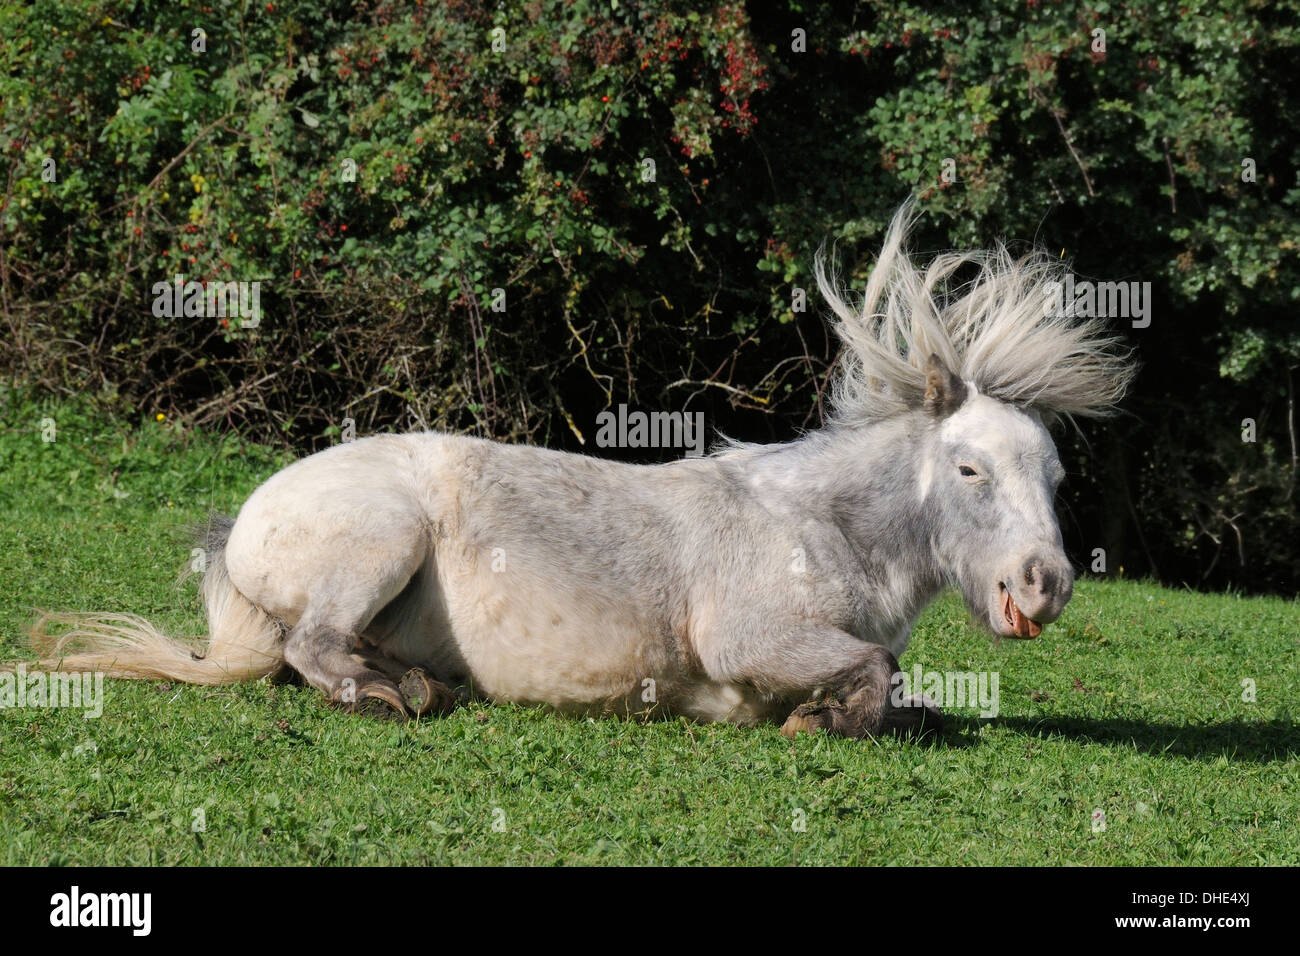 American miniature horse (Equus caballus) with its mane flying after rolling on its back on grassy pastureland, Wiltshire, UK. - Stock Image